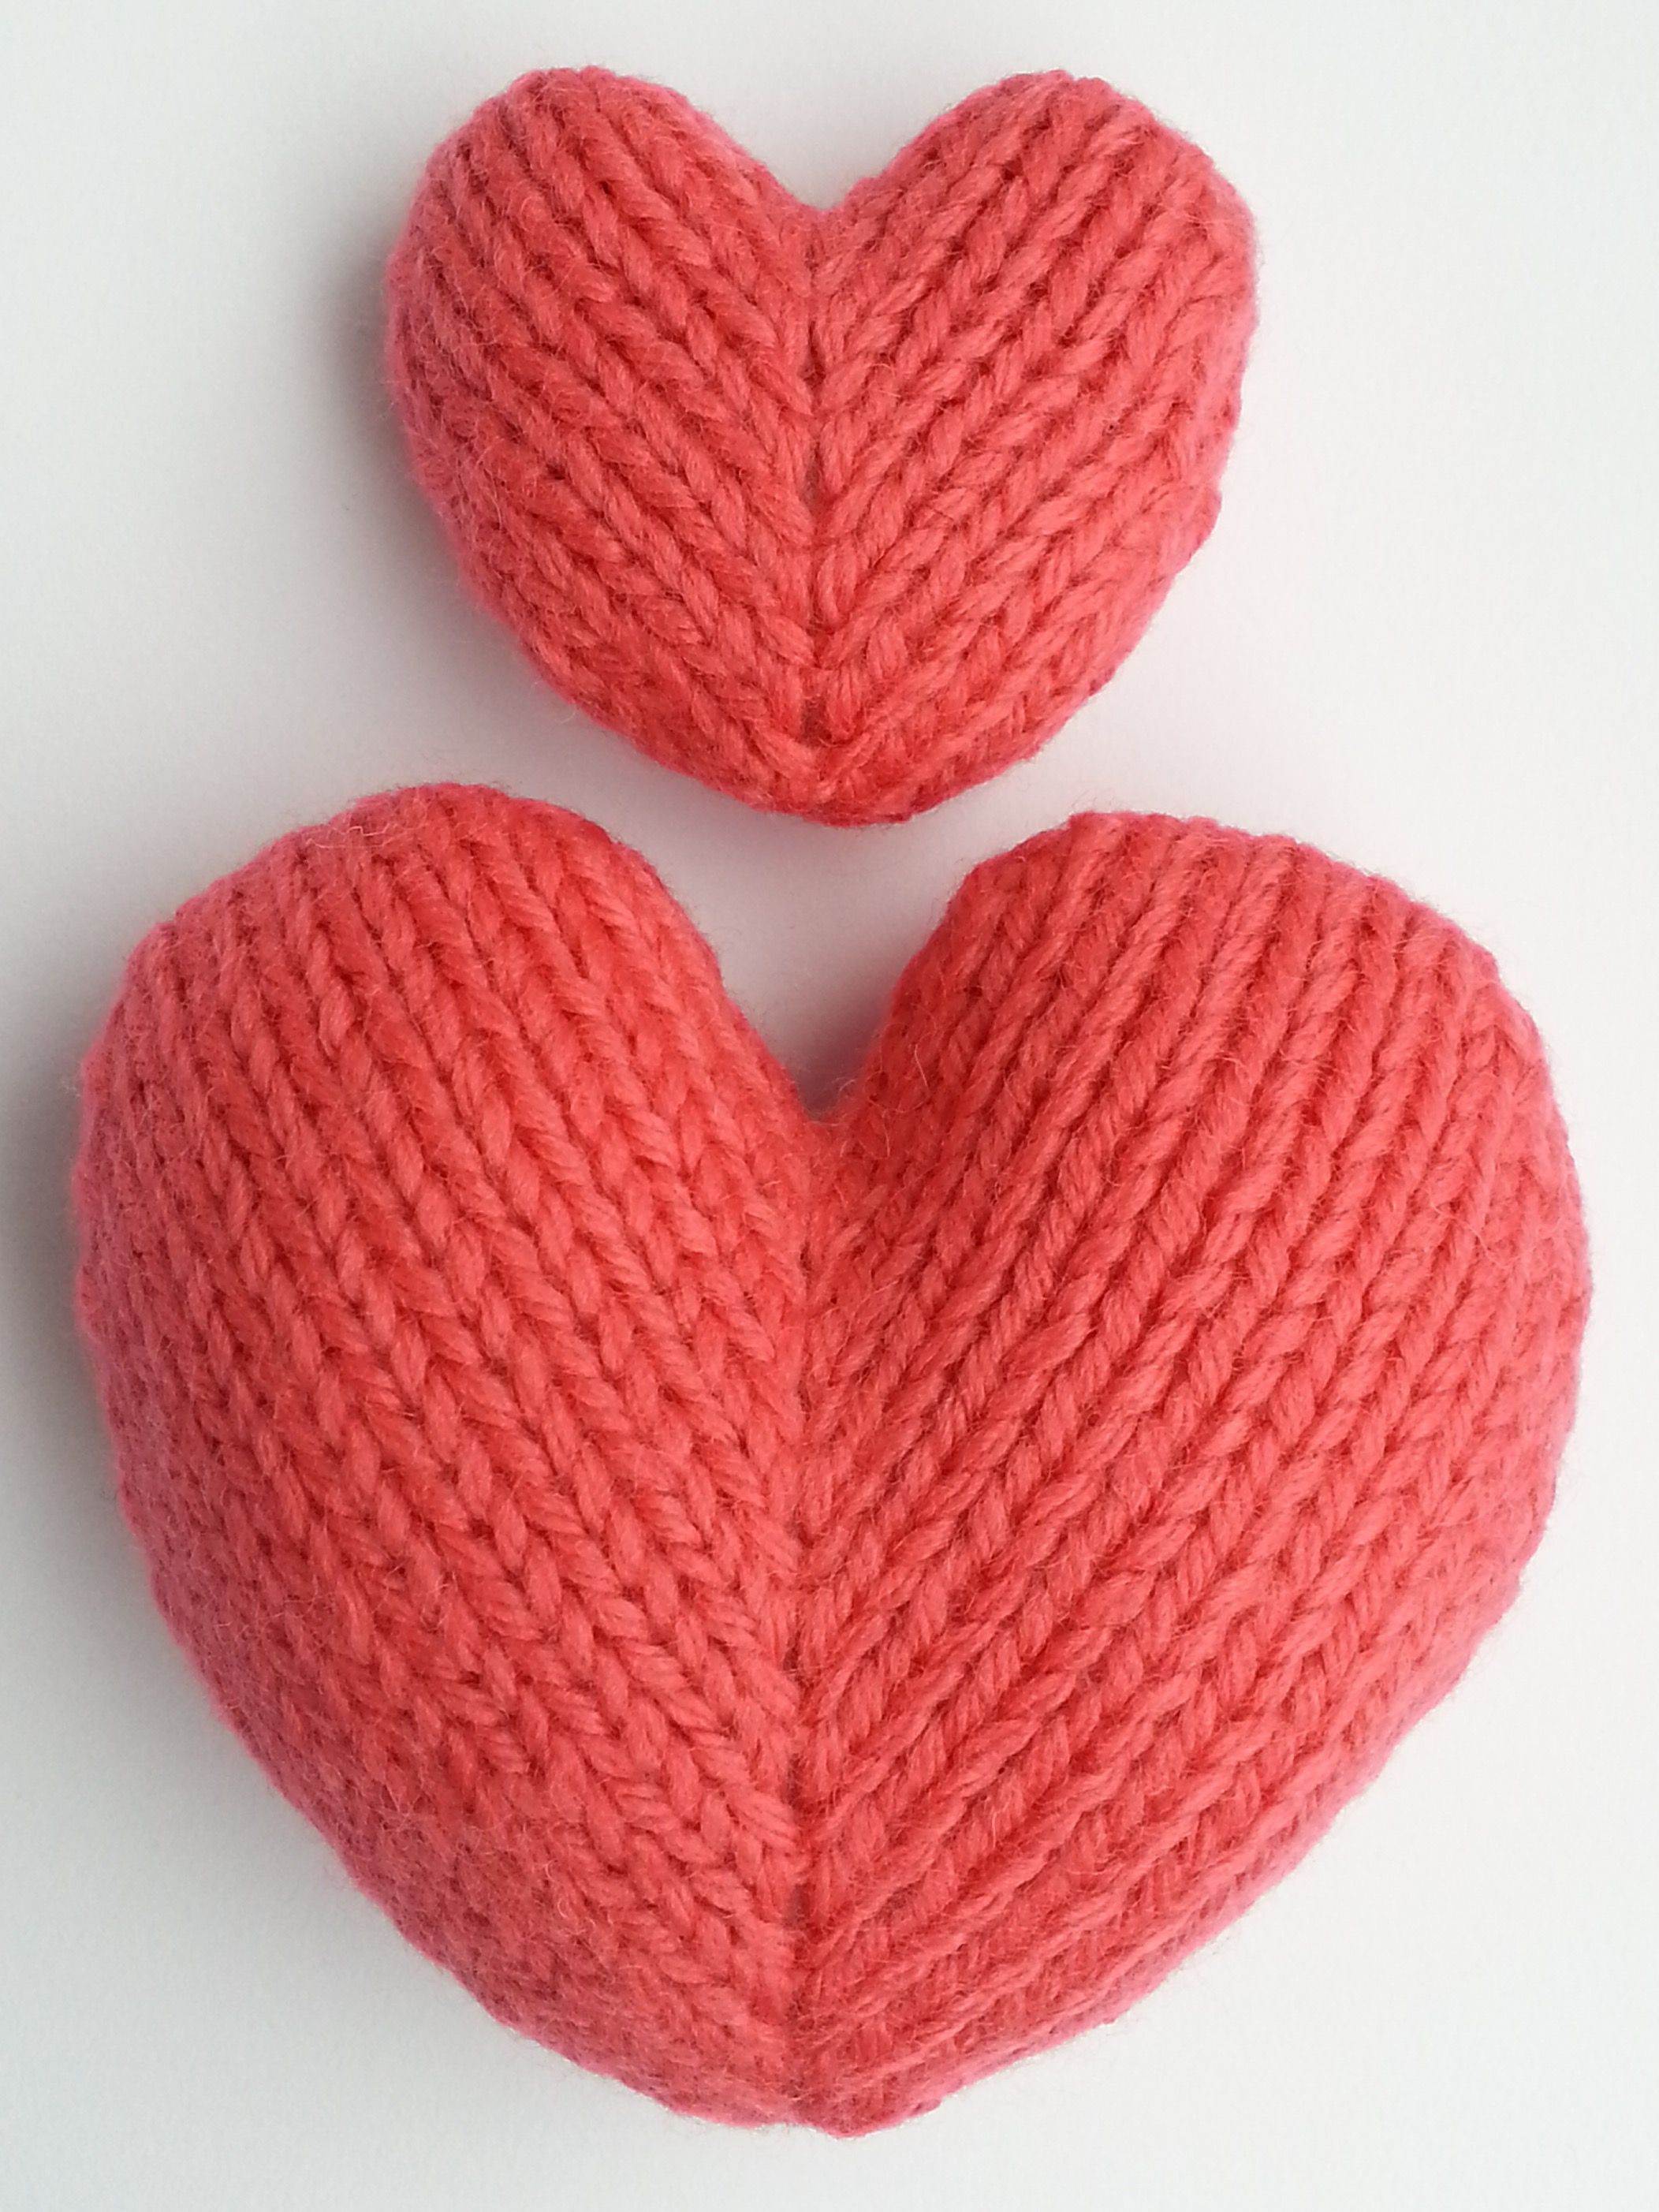 Love Hearts | Squibblybups | Pinterest | Knit patterns, Anniversary ...